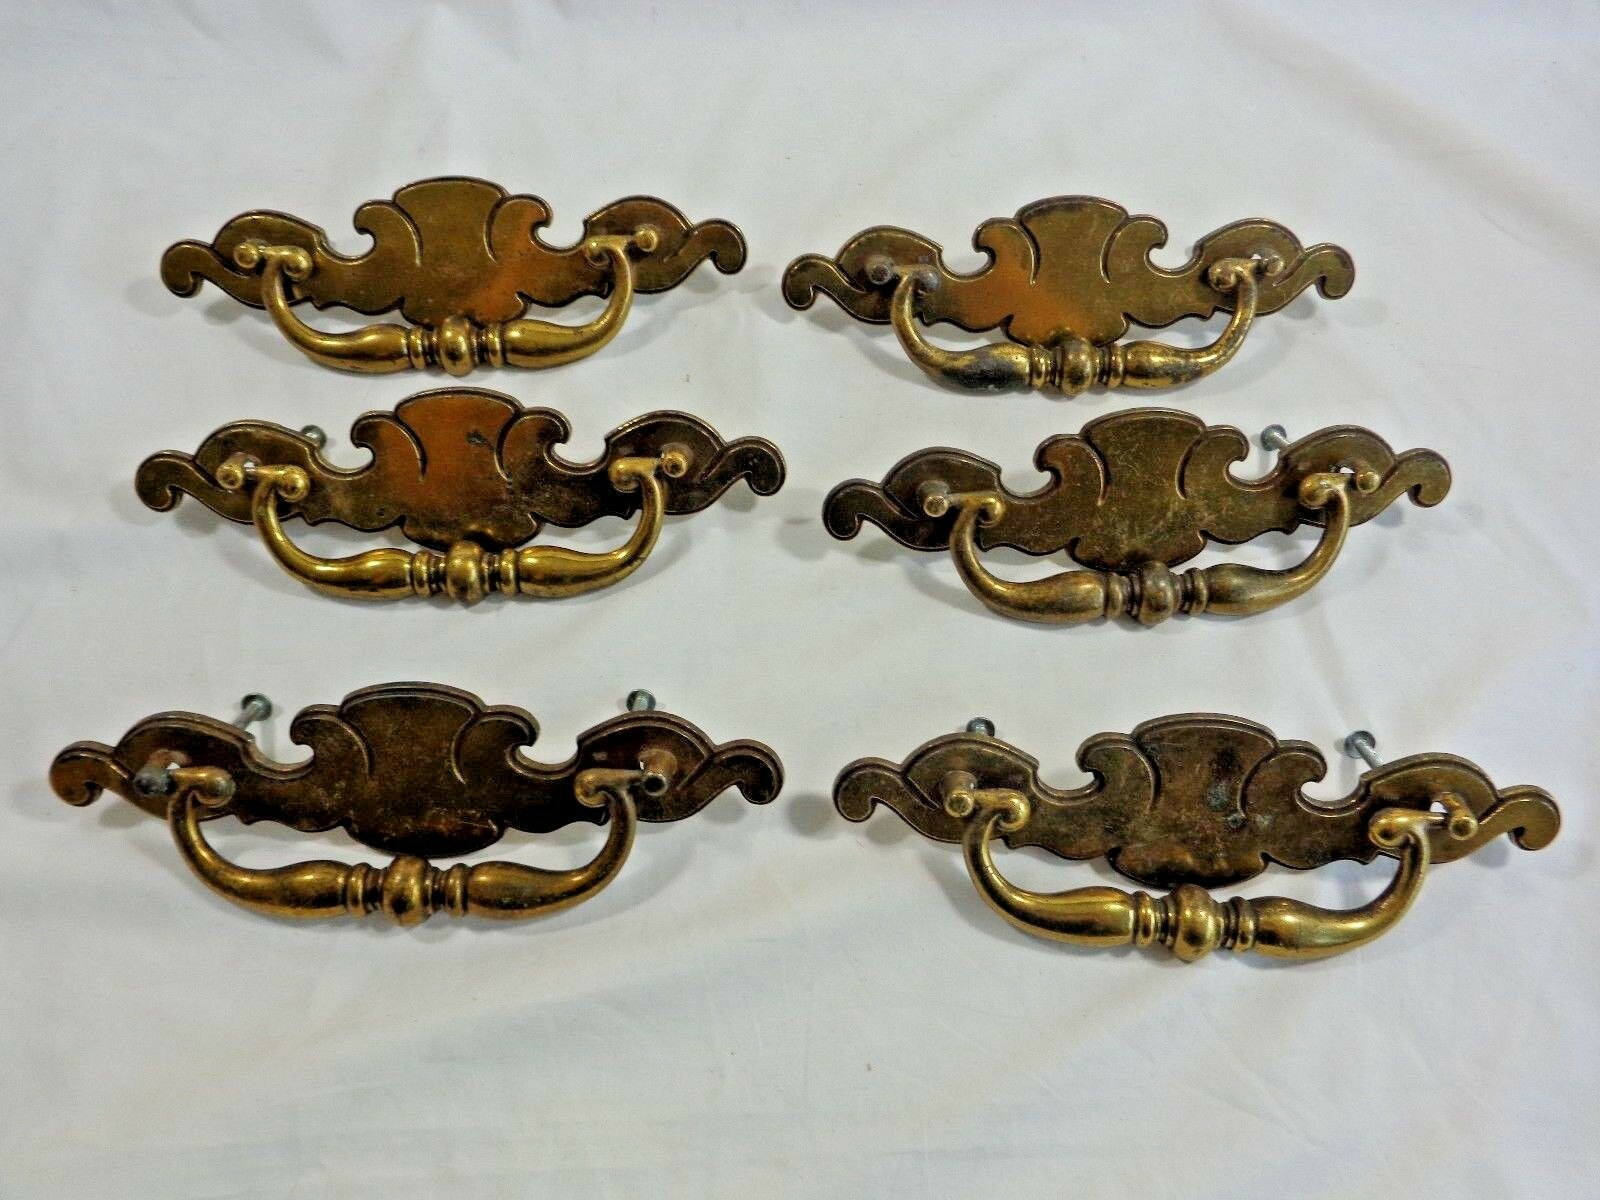 "Vintage Brass Drawer Pulls 8"" SET OF 6 Flip Up Handle B199-0 with Screws"